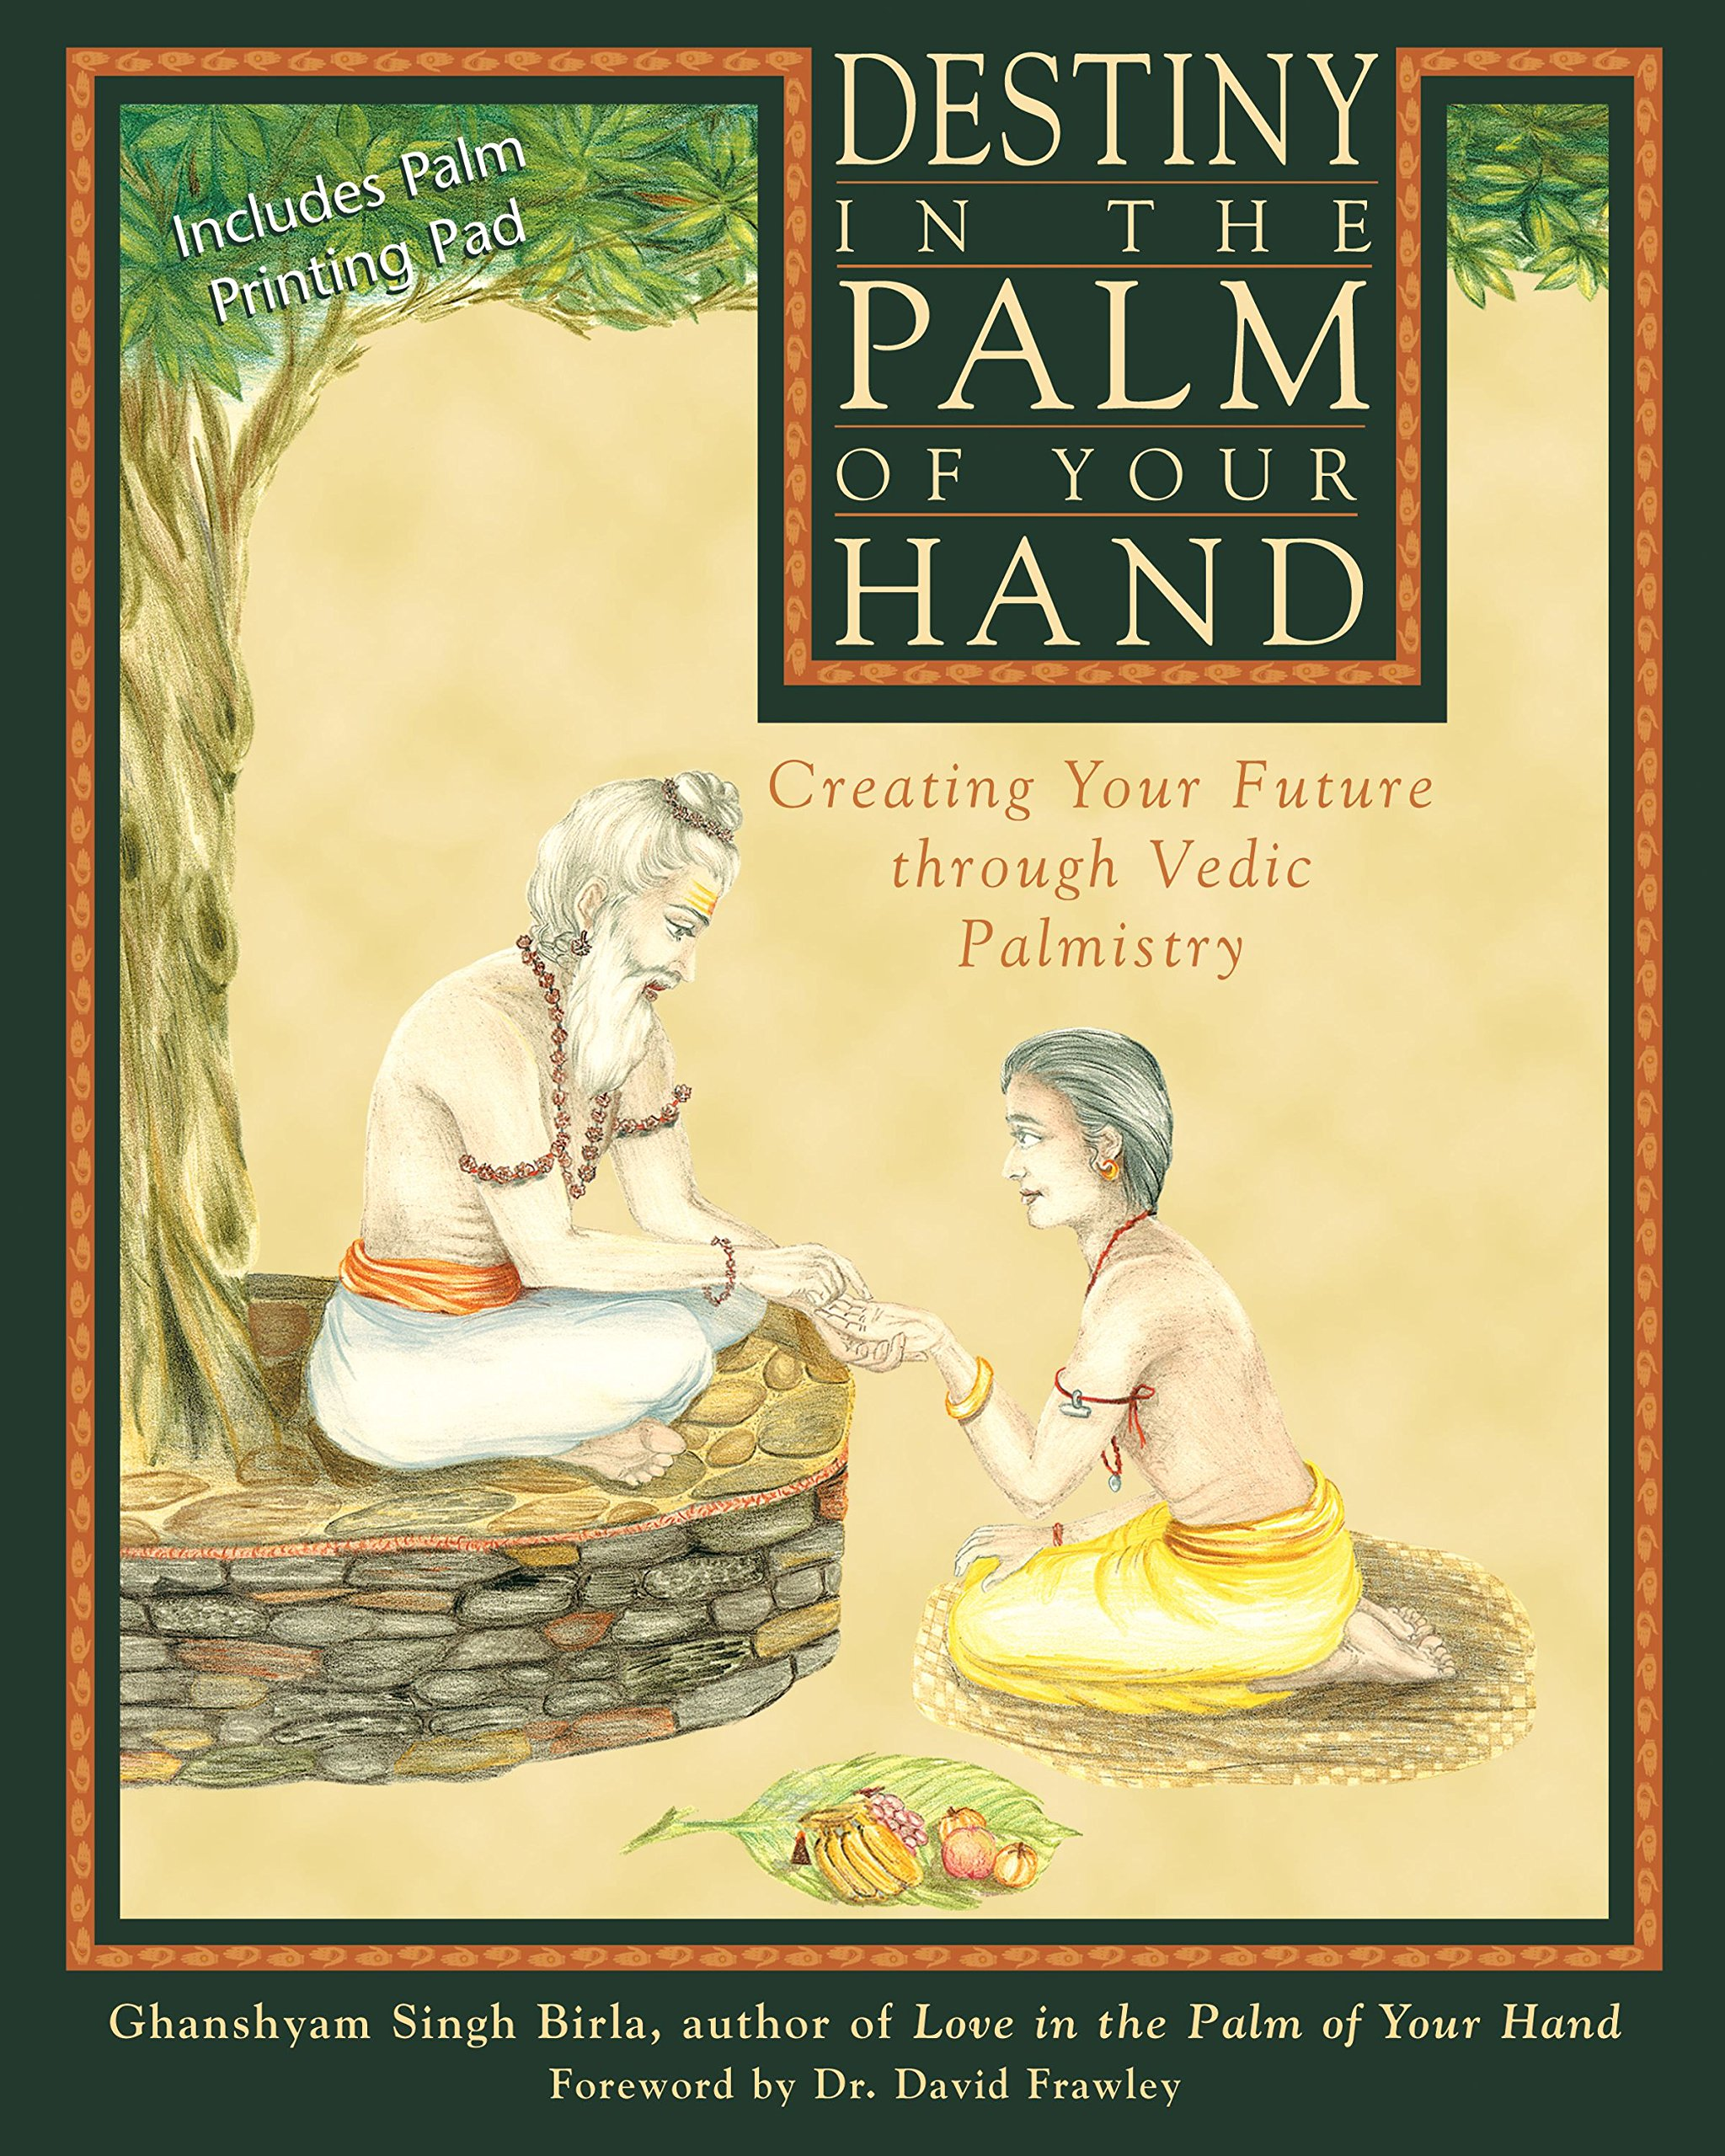 Heart in the palm of your hand: a summary of the novel